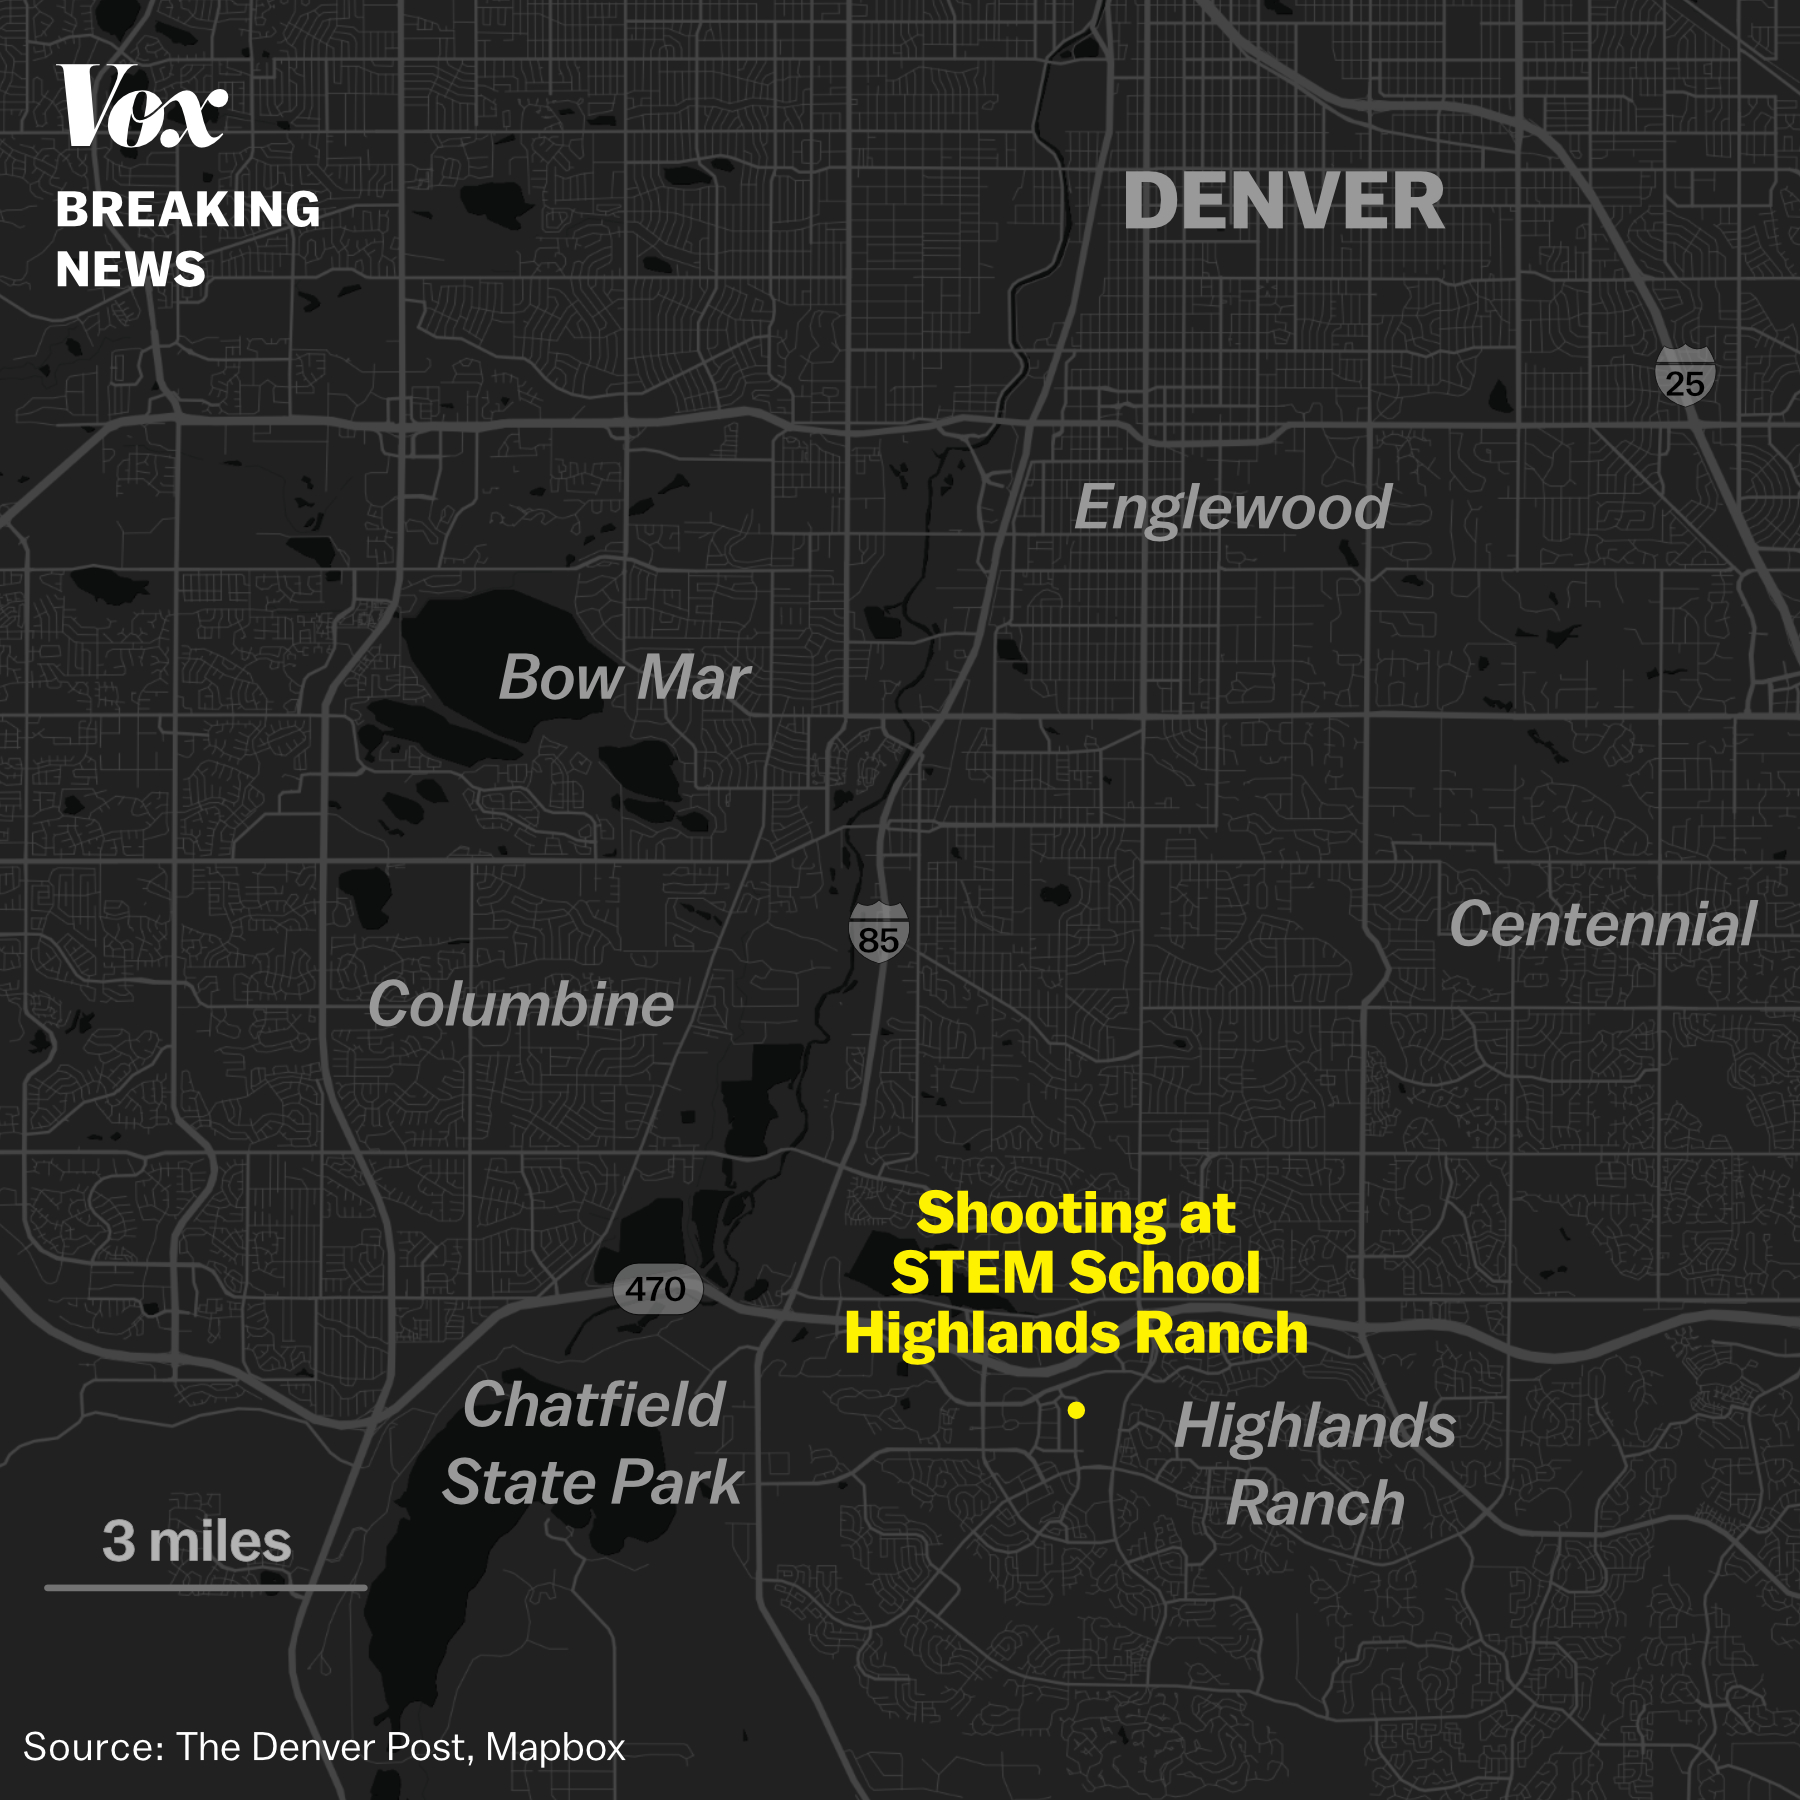 Flipboard The Latest 2 In Custody In Colorado School: Flipboard: The Latest: 2 In Custody In Colorado School